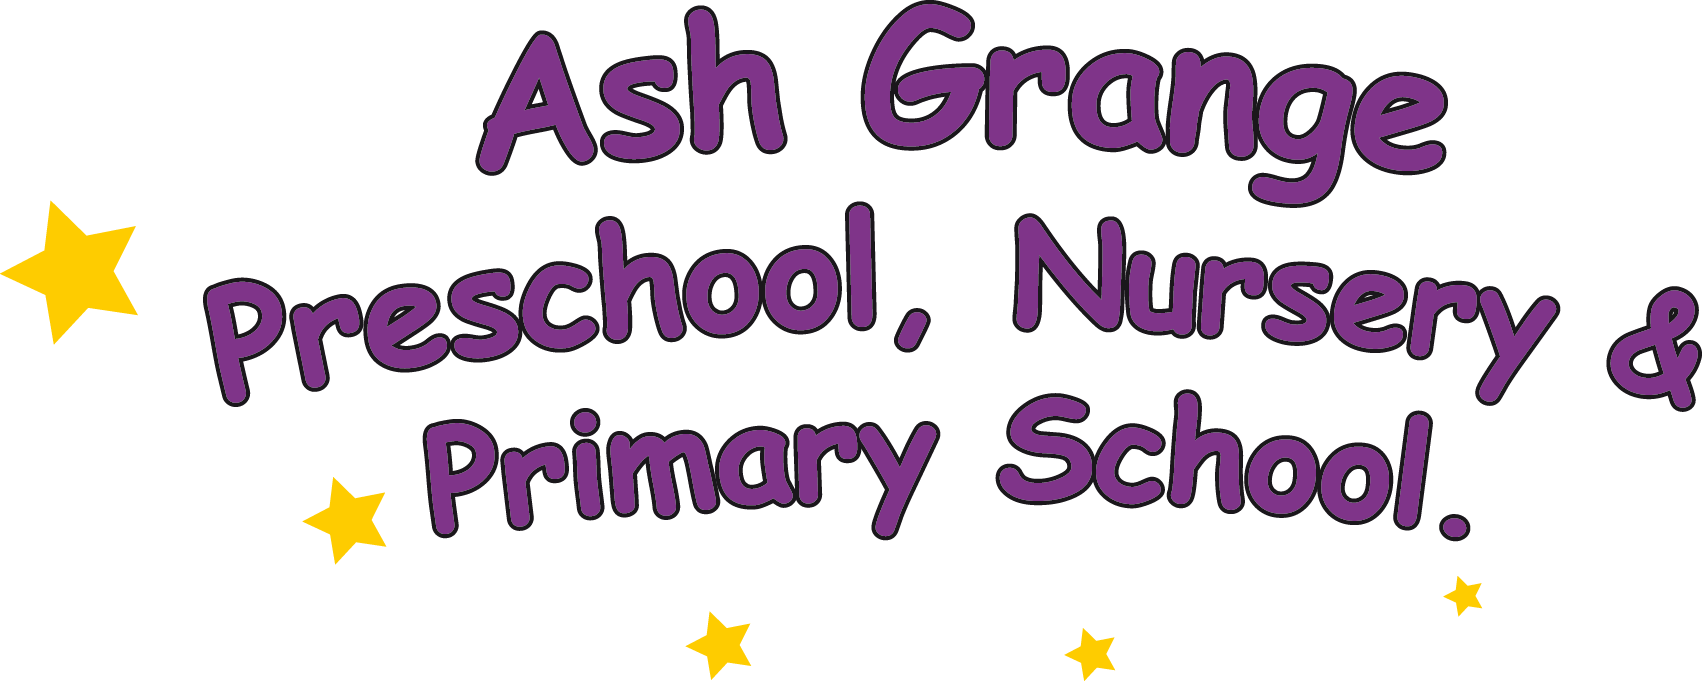 Ash Grange Preschool, Nursery & Primary School